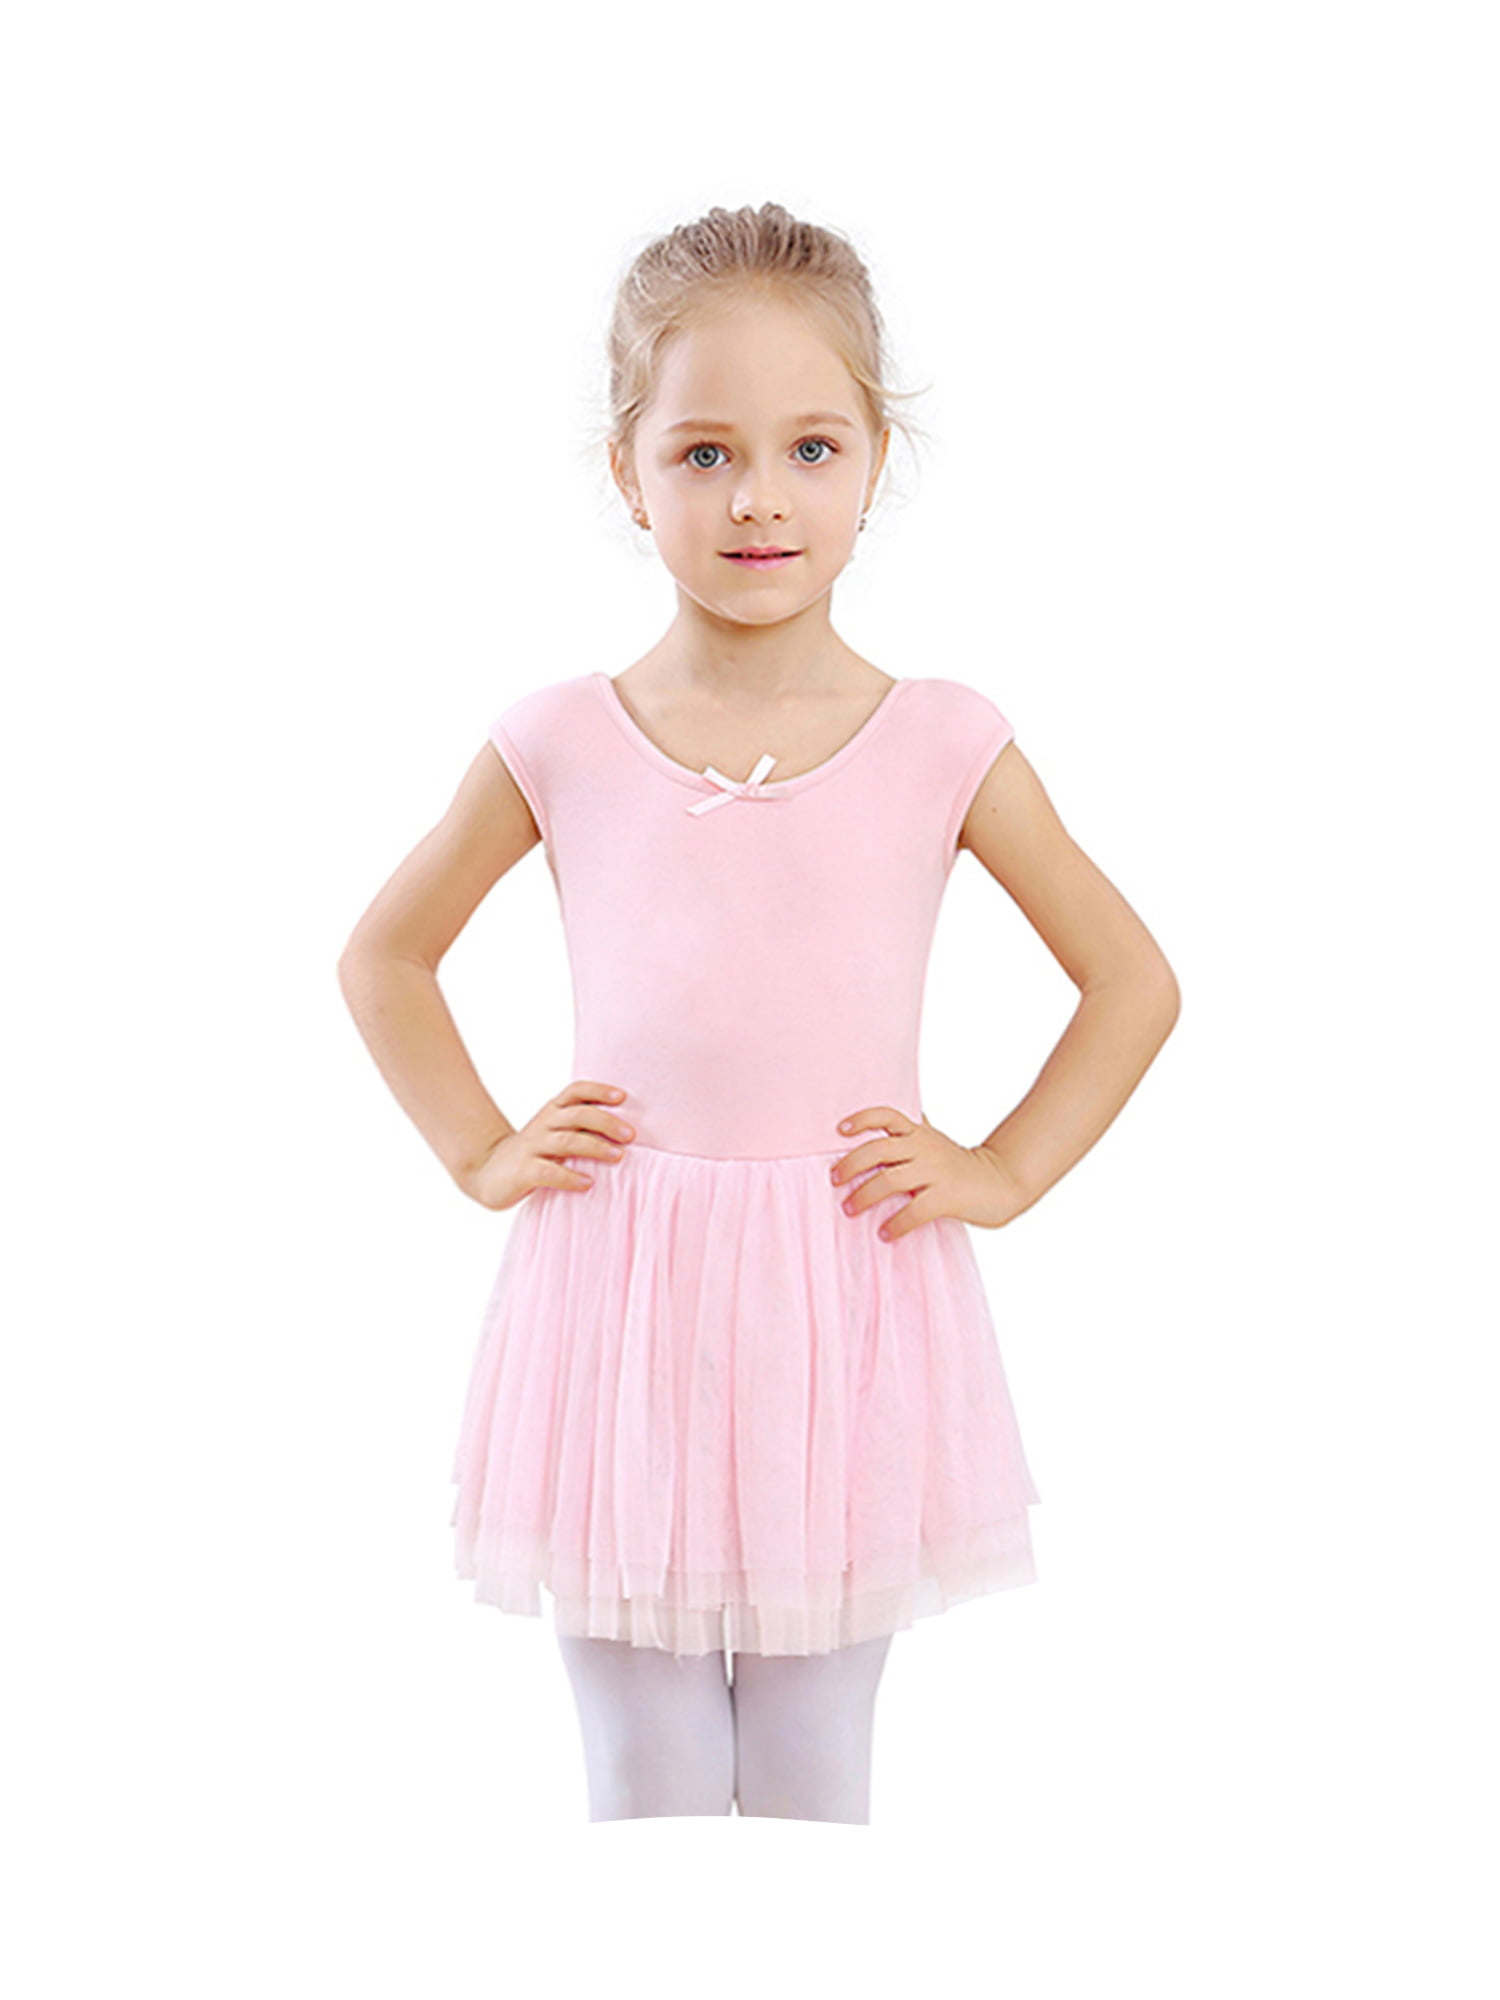 Capezio Future Star Layered Long Sleeve Top Girls Pink Faux Lacing Ballet shirt